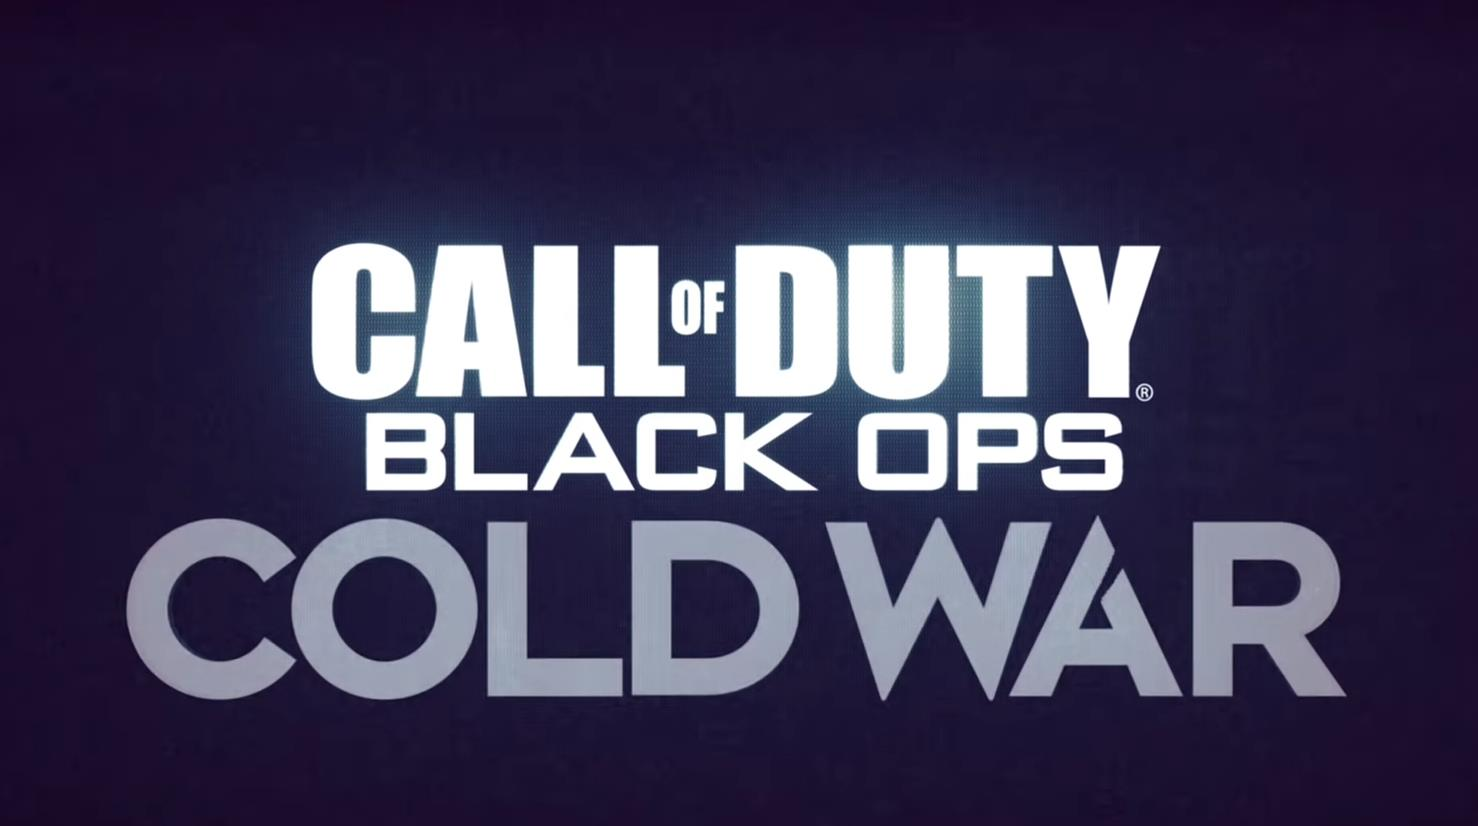 Call of Duty: Black Ops Cold War officially confirmed as this year's game, reveal on August 26 thumbnail